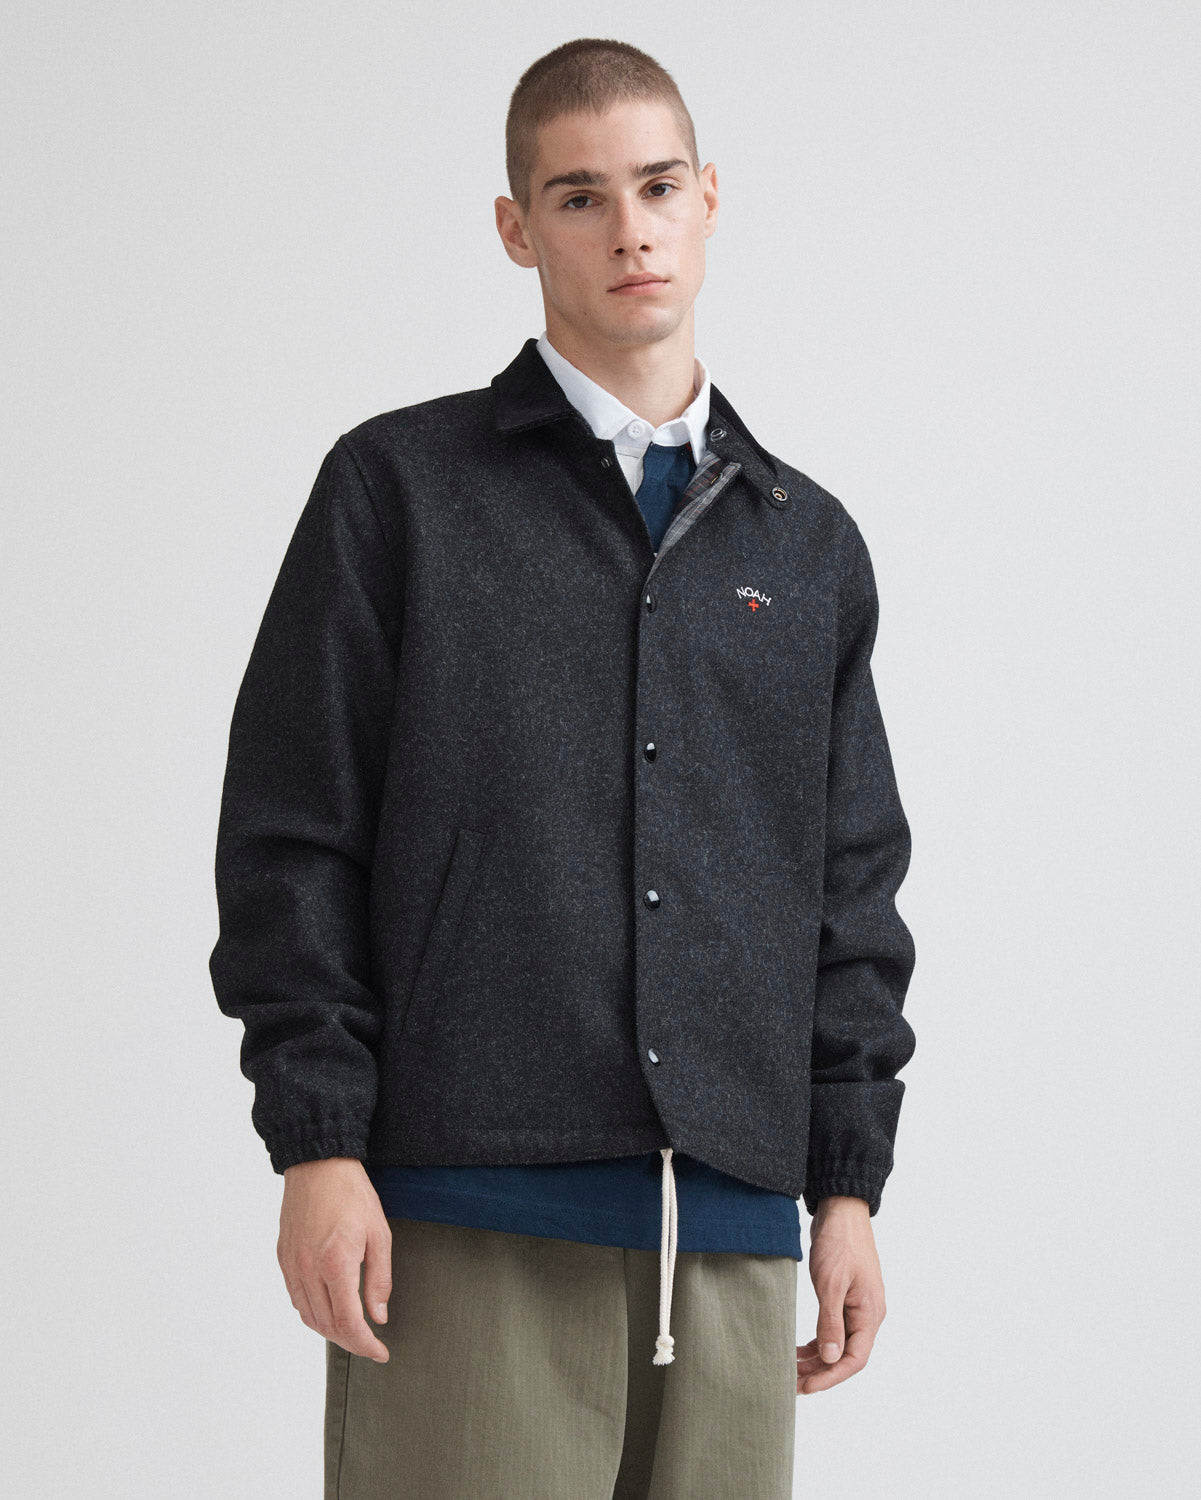 Wool Campus Jacket